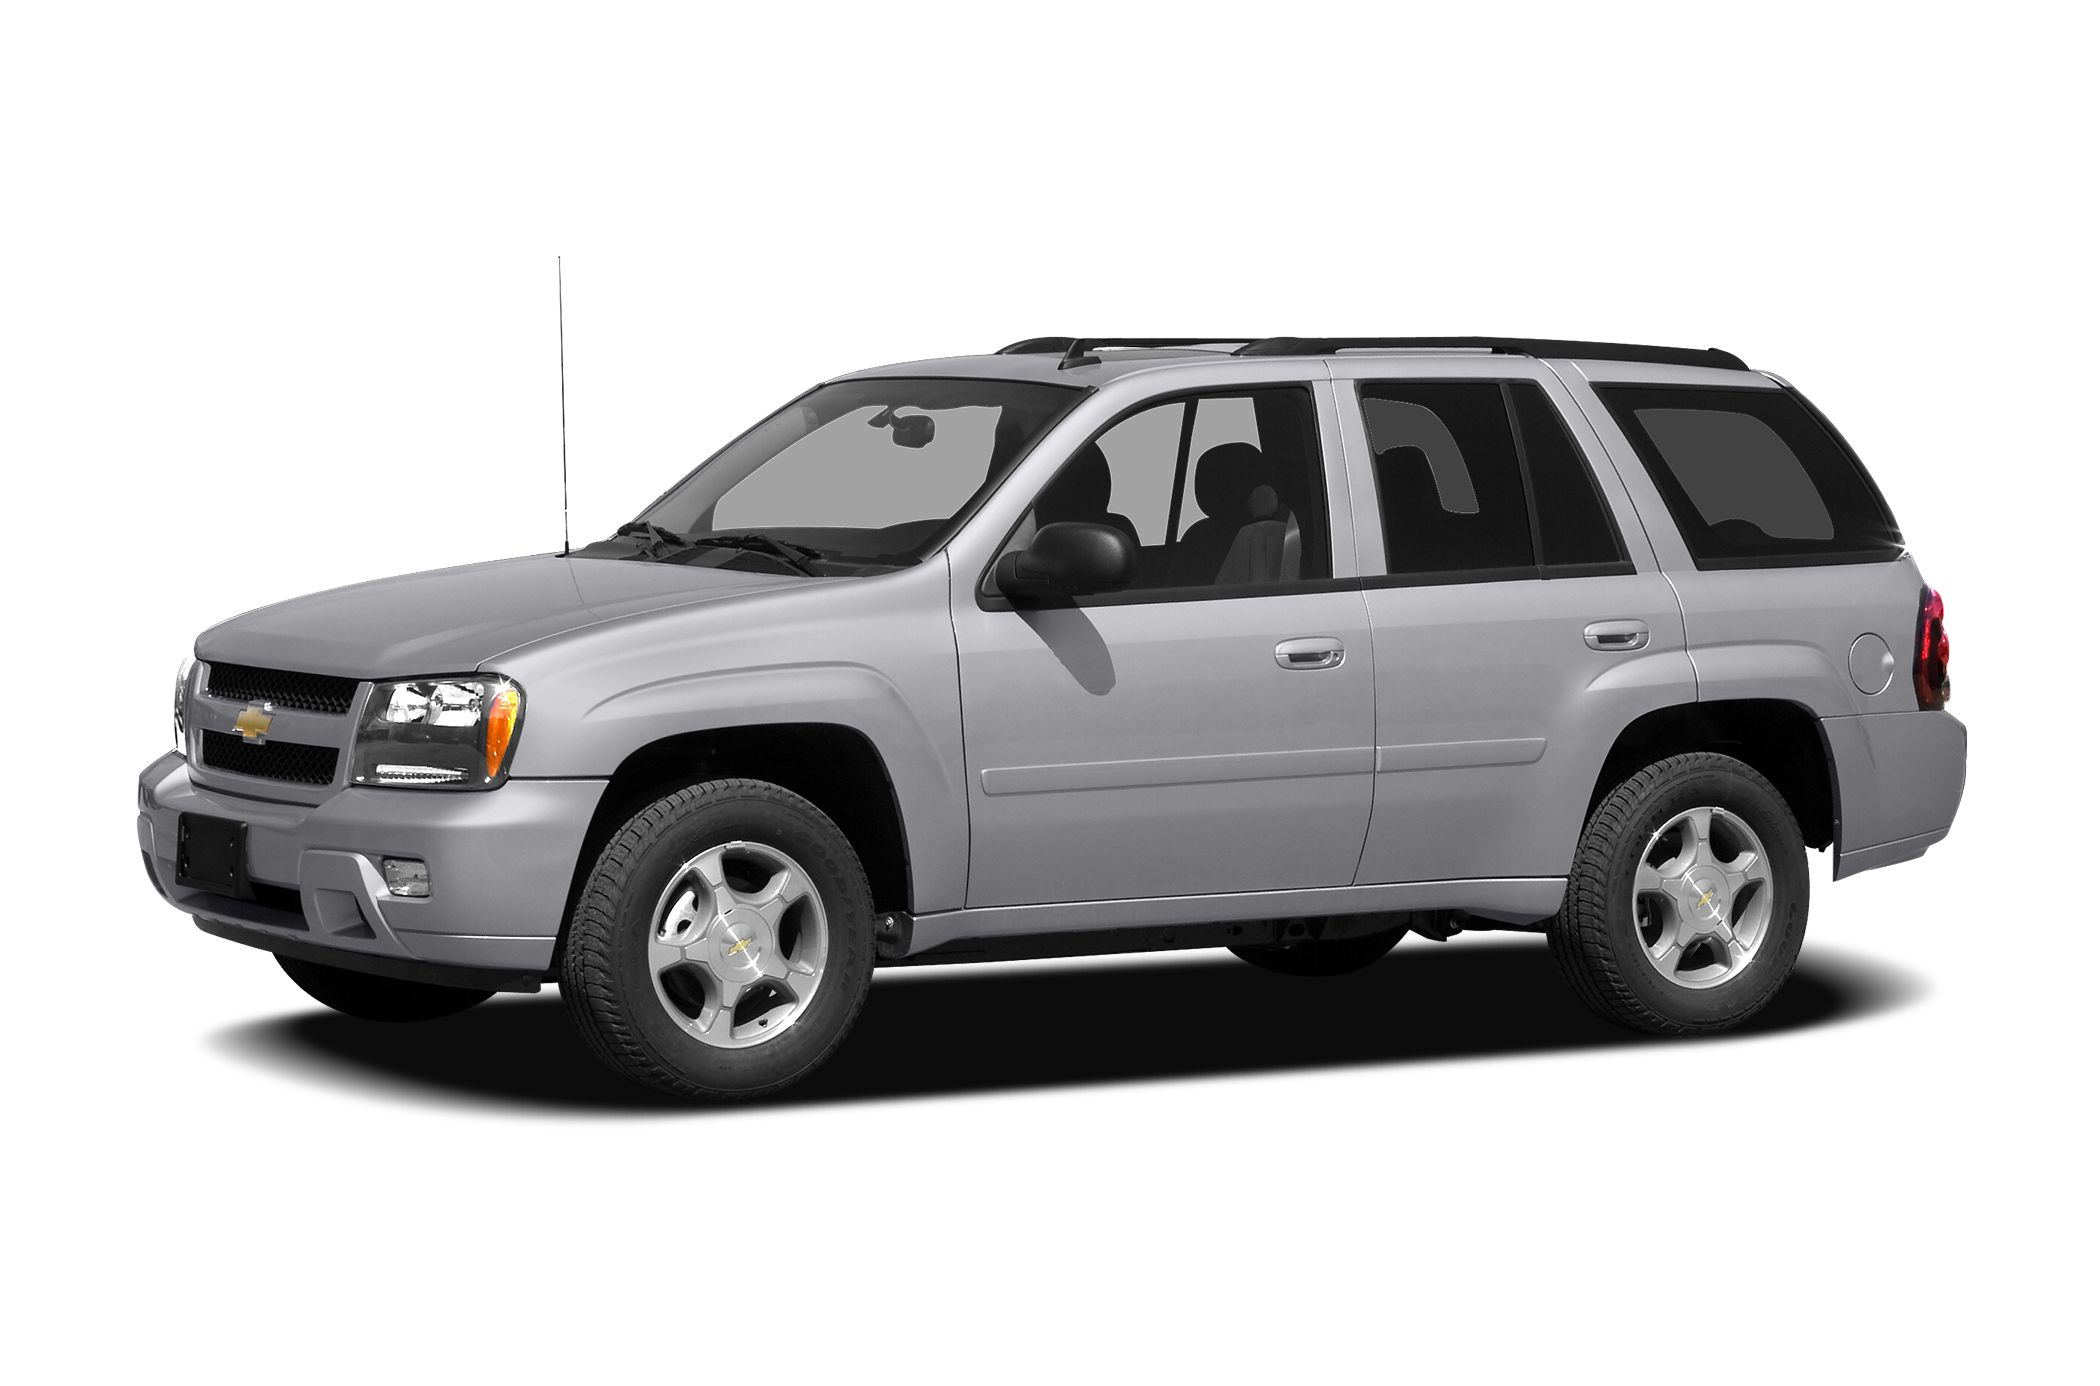 2008 Chevrolet TrailBlazer LT SUV for sale in Dayton for $7,998 with 129,884 miles.